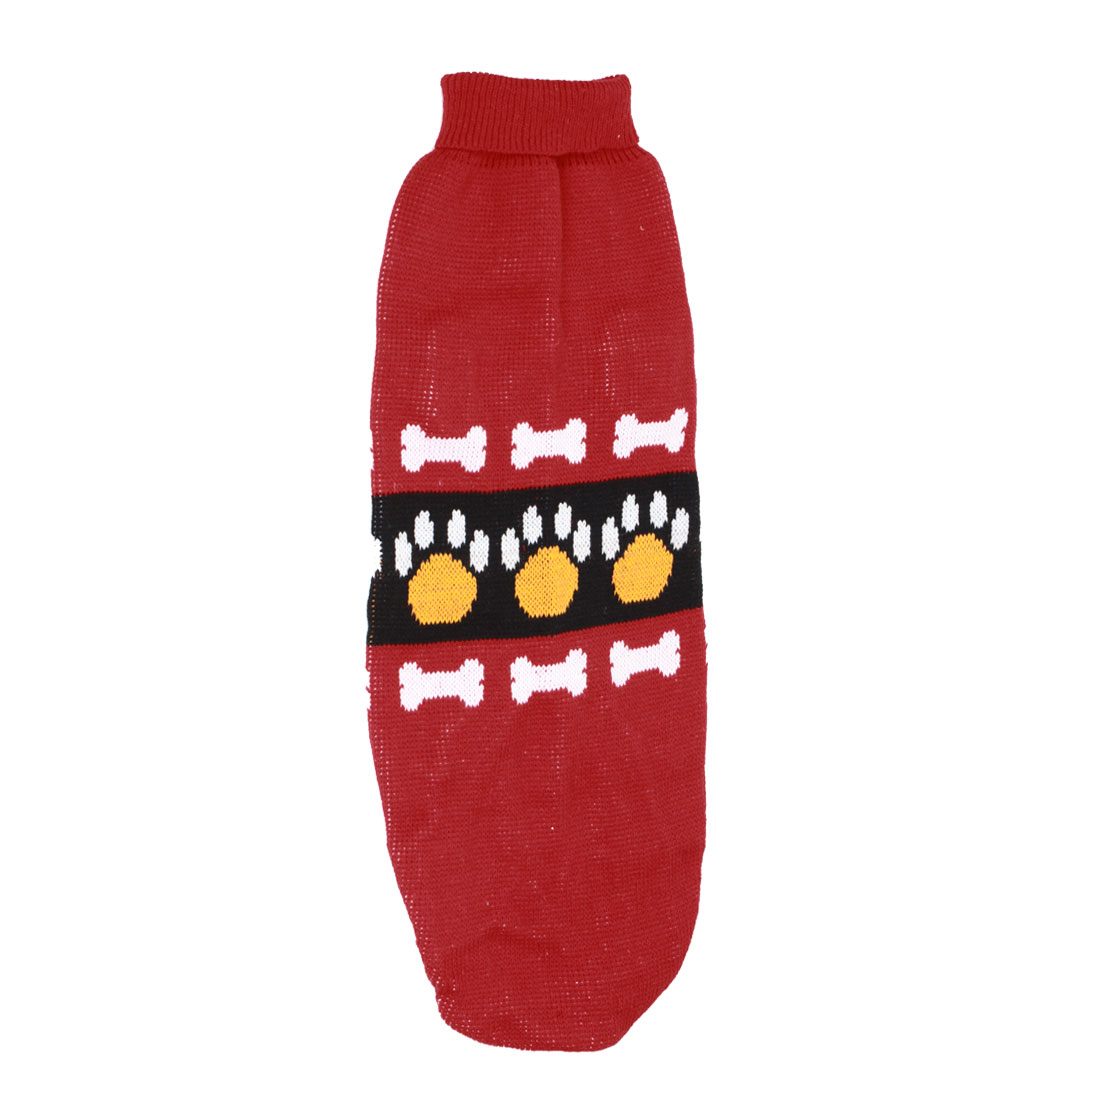 Pet Dog Doggie Bone Claw Print Ribbed Cuff Knitwear Turtleneck Apparel Sweater Colorful Size XL